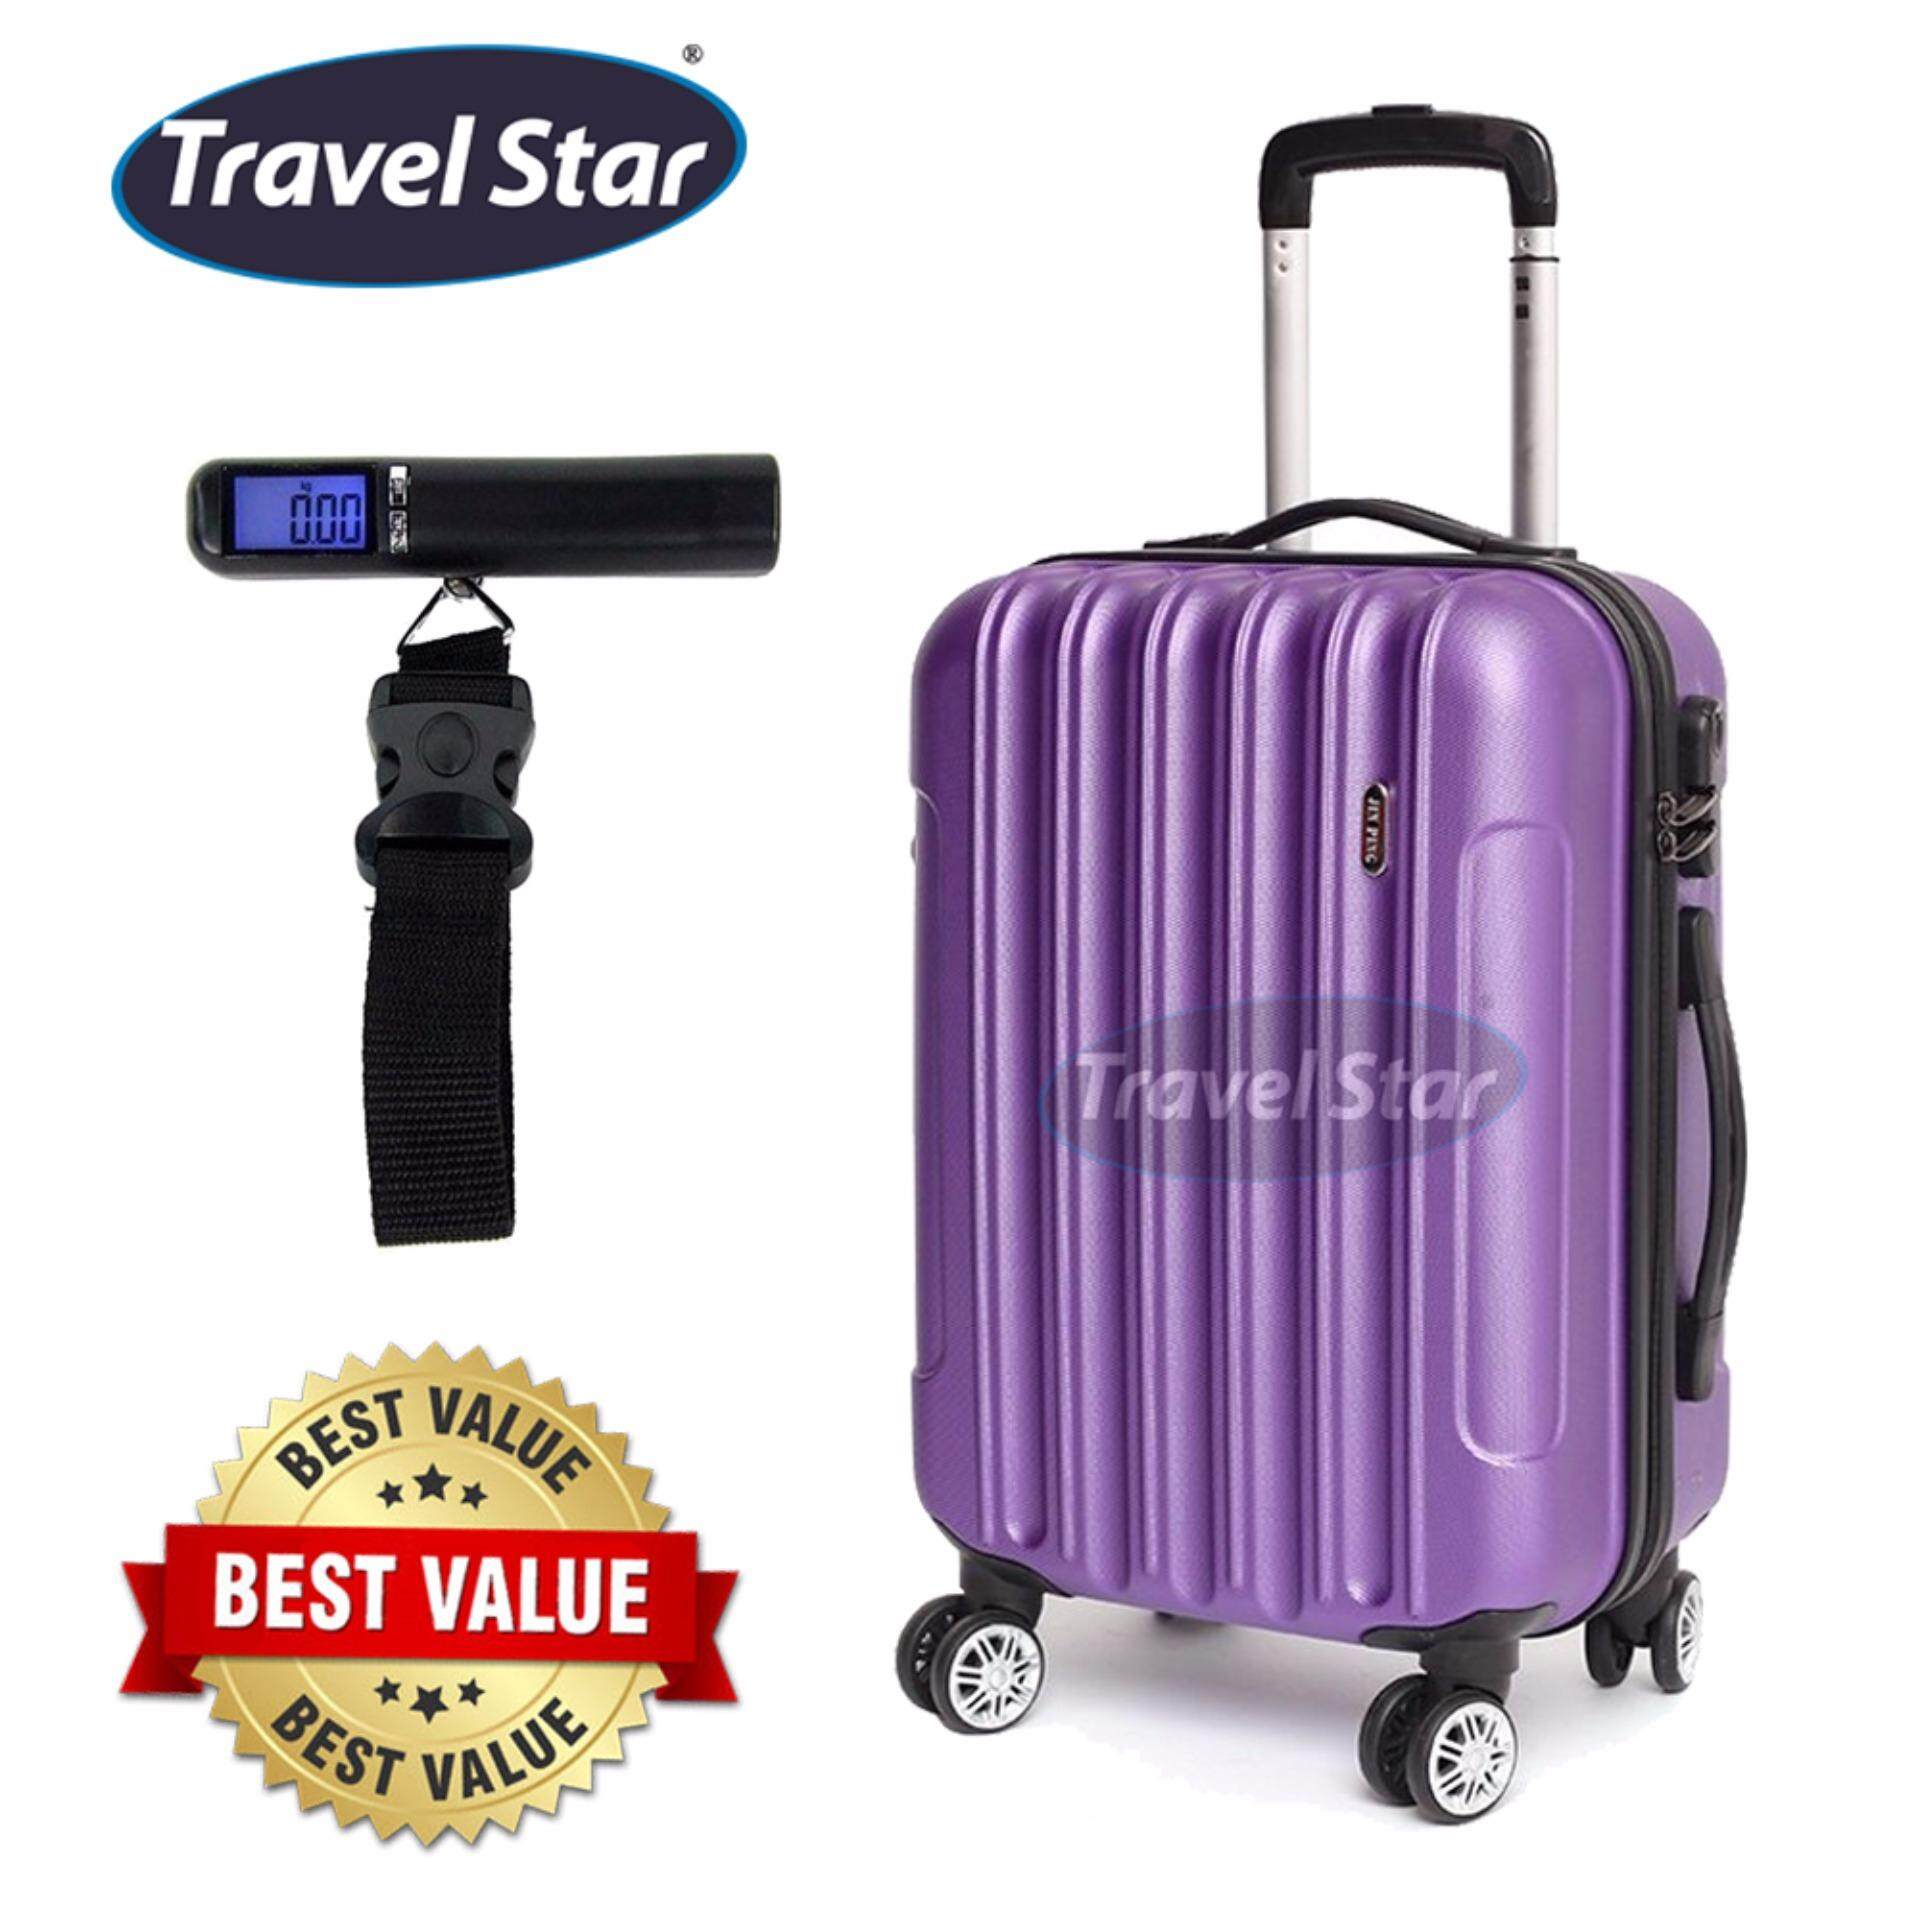 Bundle : Voyage Hard Case ABS Luggage Bagasi - 20 Inches (Purple) + Portable Digital Luggage Scale with LCD Display